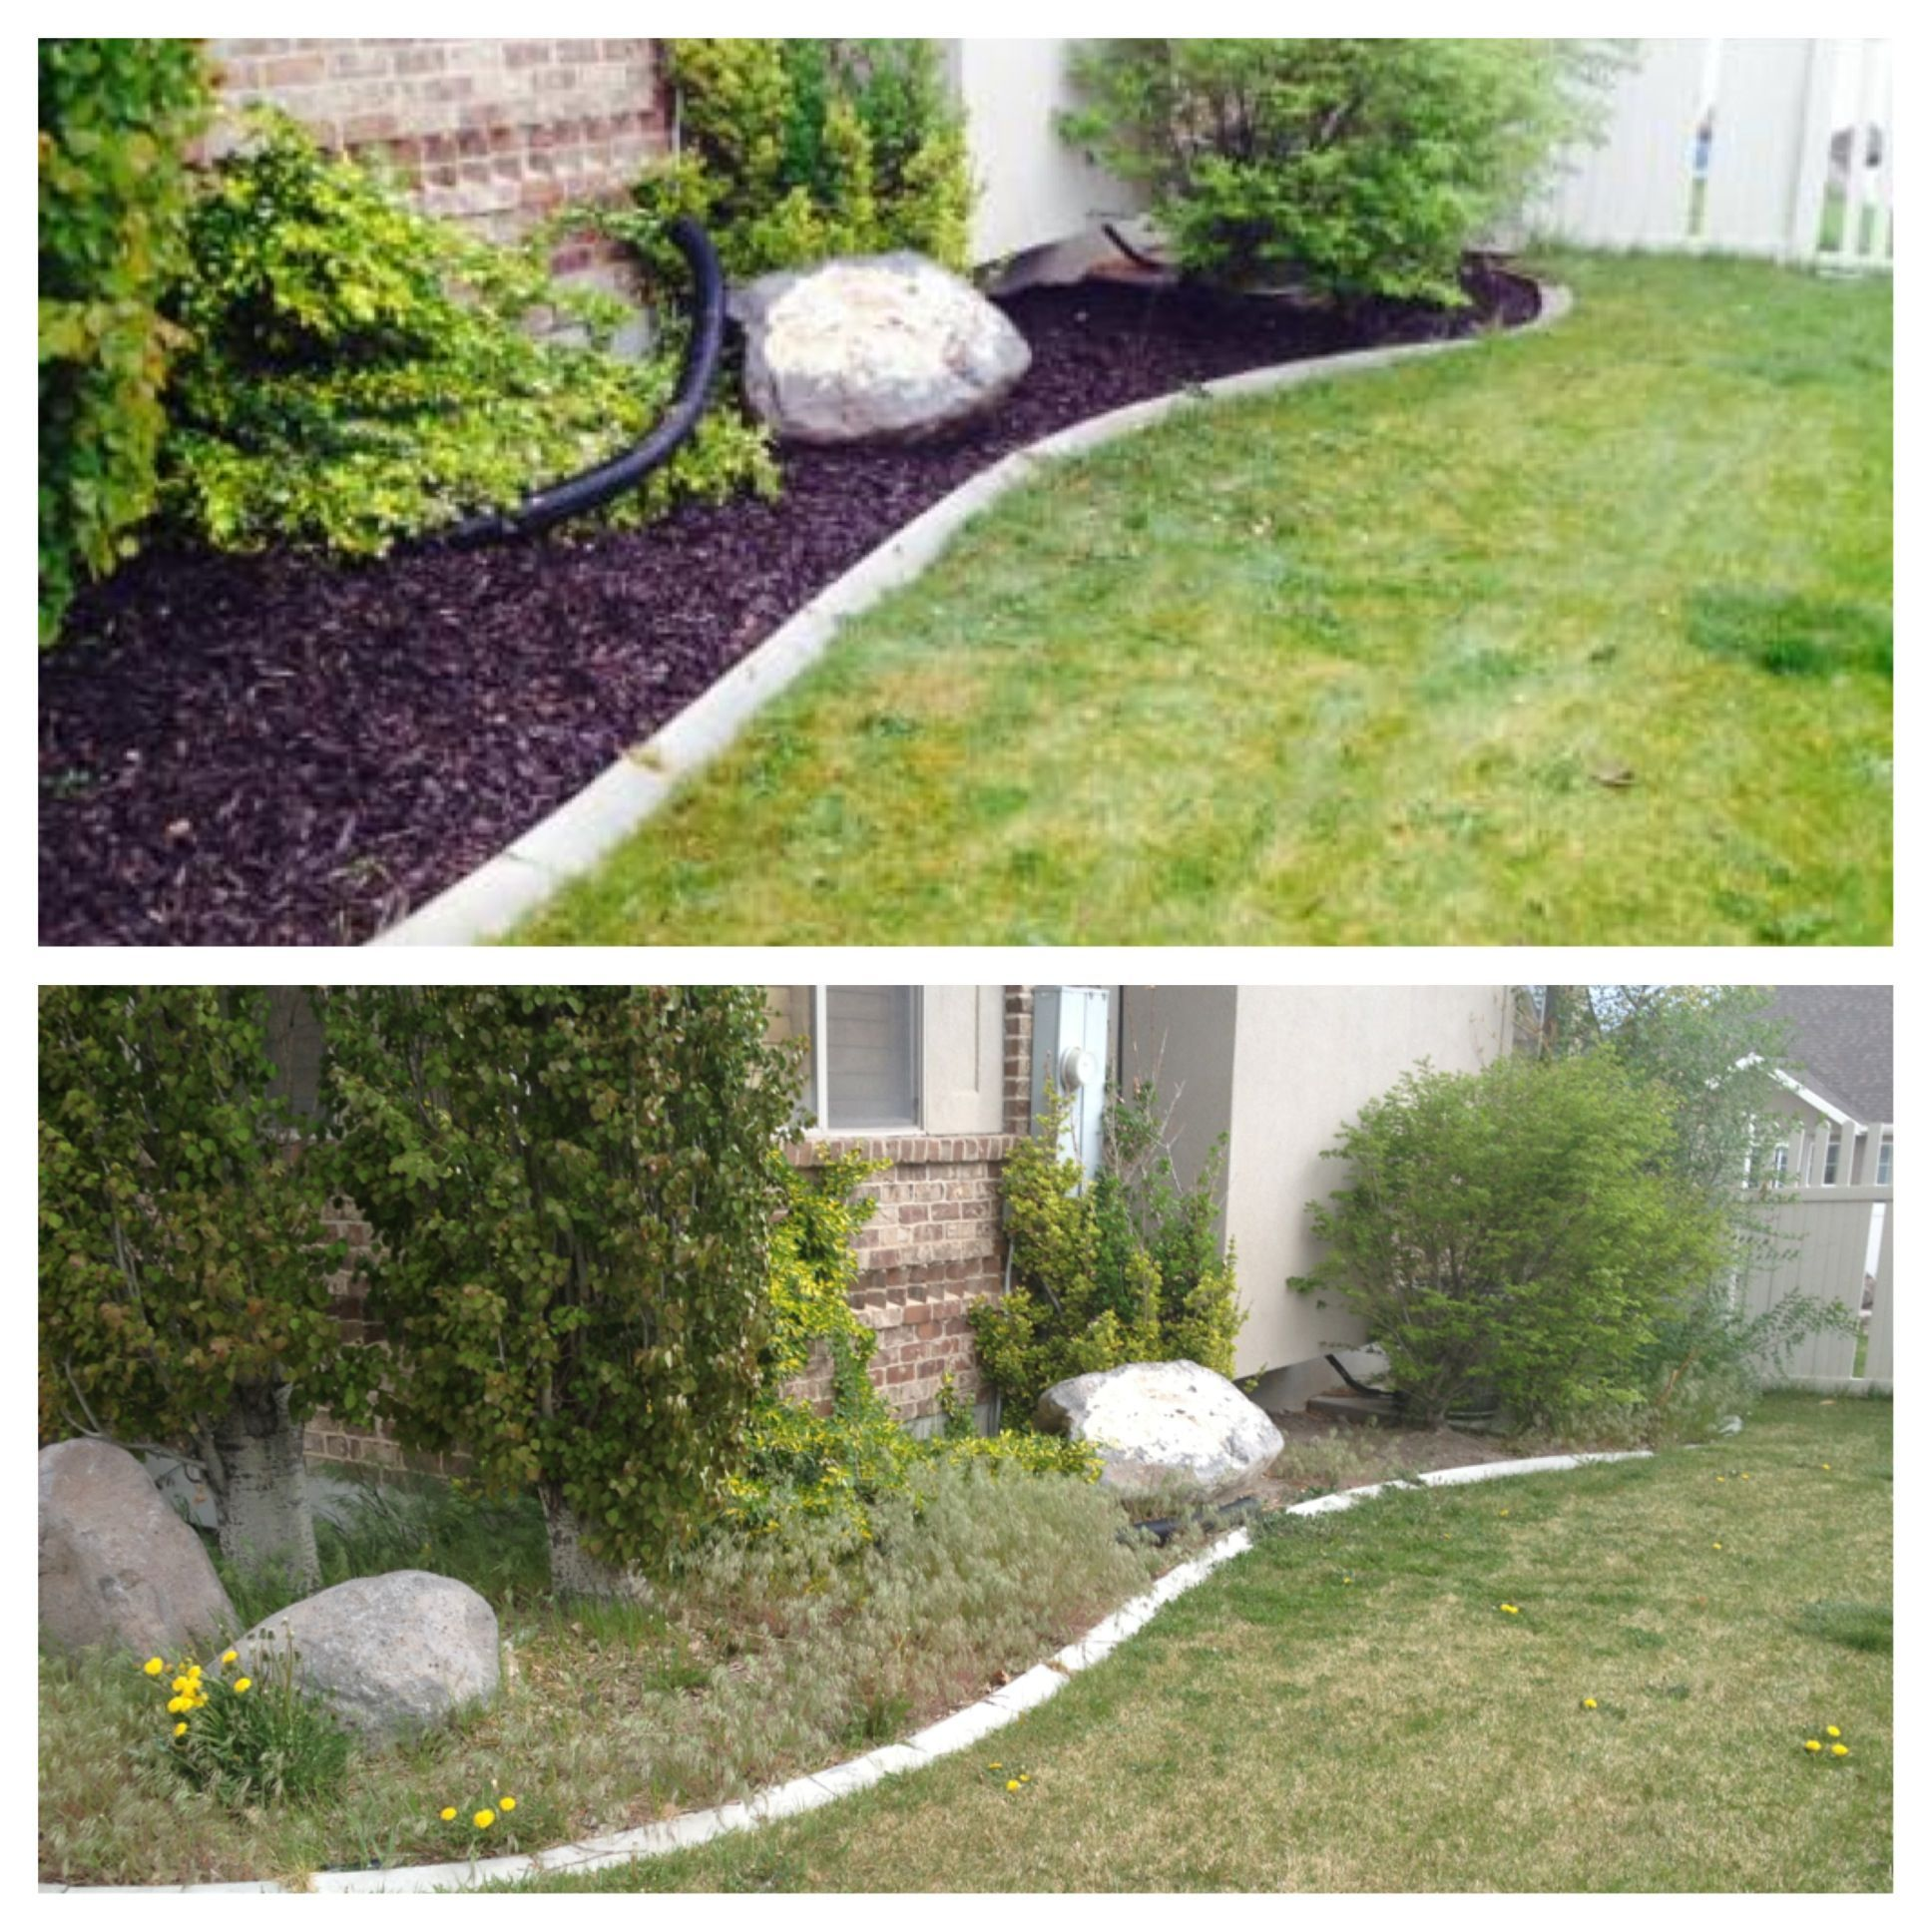 Spring Yard Clean Up Weeding And Mulch Installed The Dark Brown Mulch Looks Amazing Spring Cleaning Yard Front Yard Landscaping Fall Clean Up Diy backyard clean up